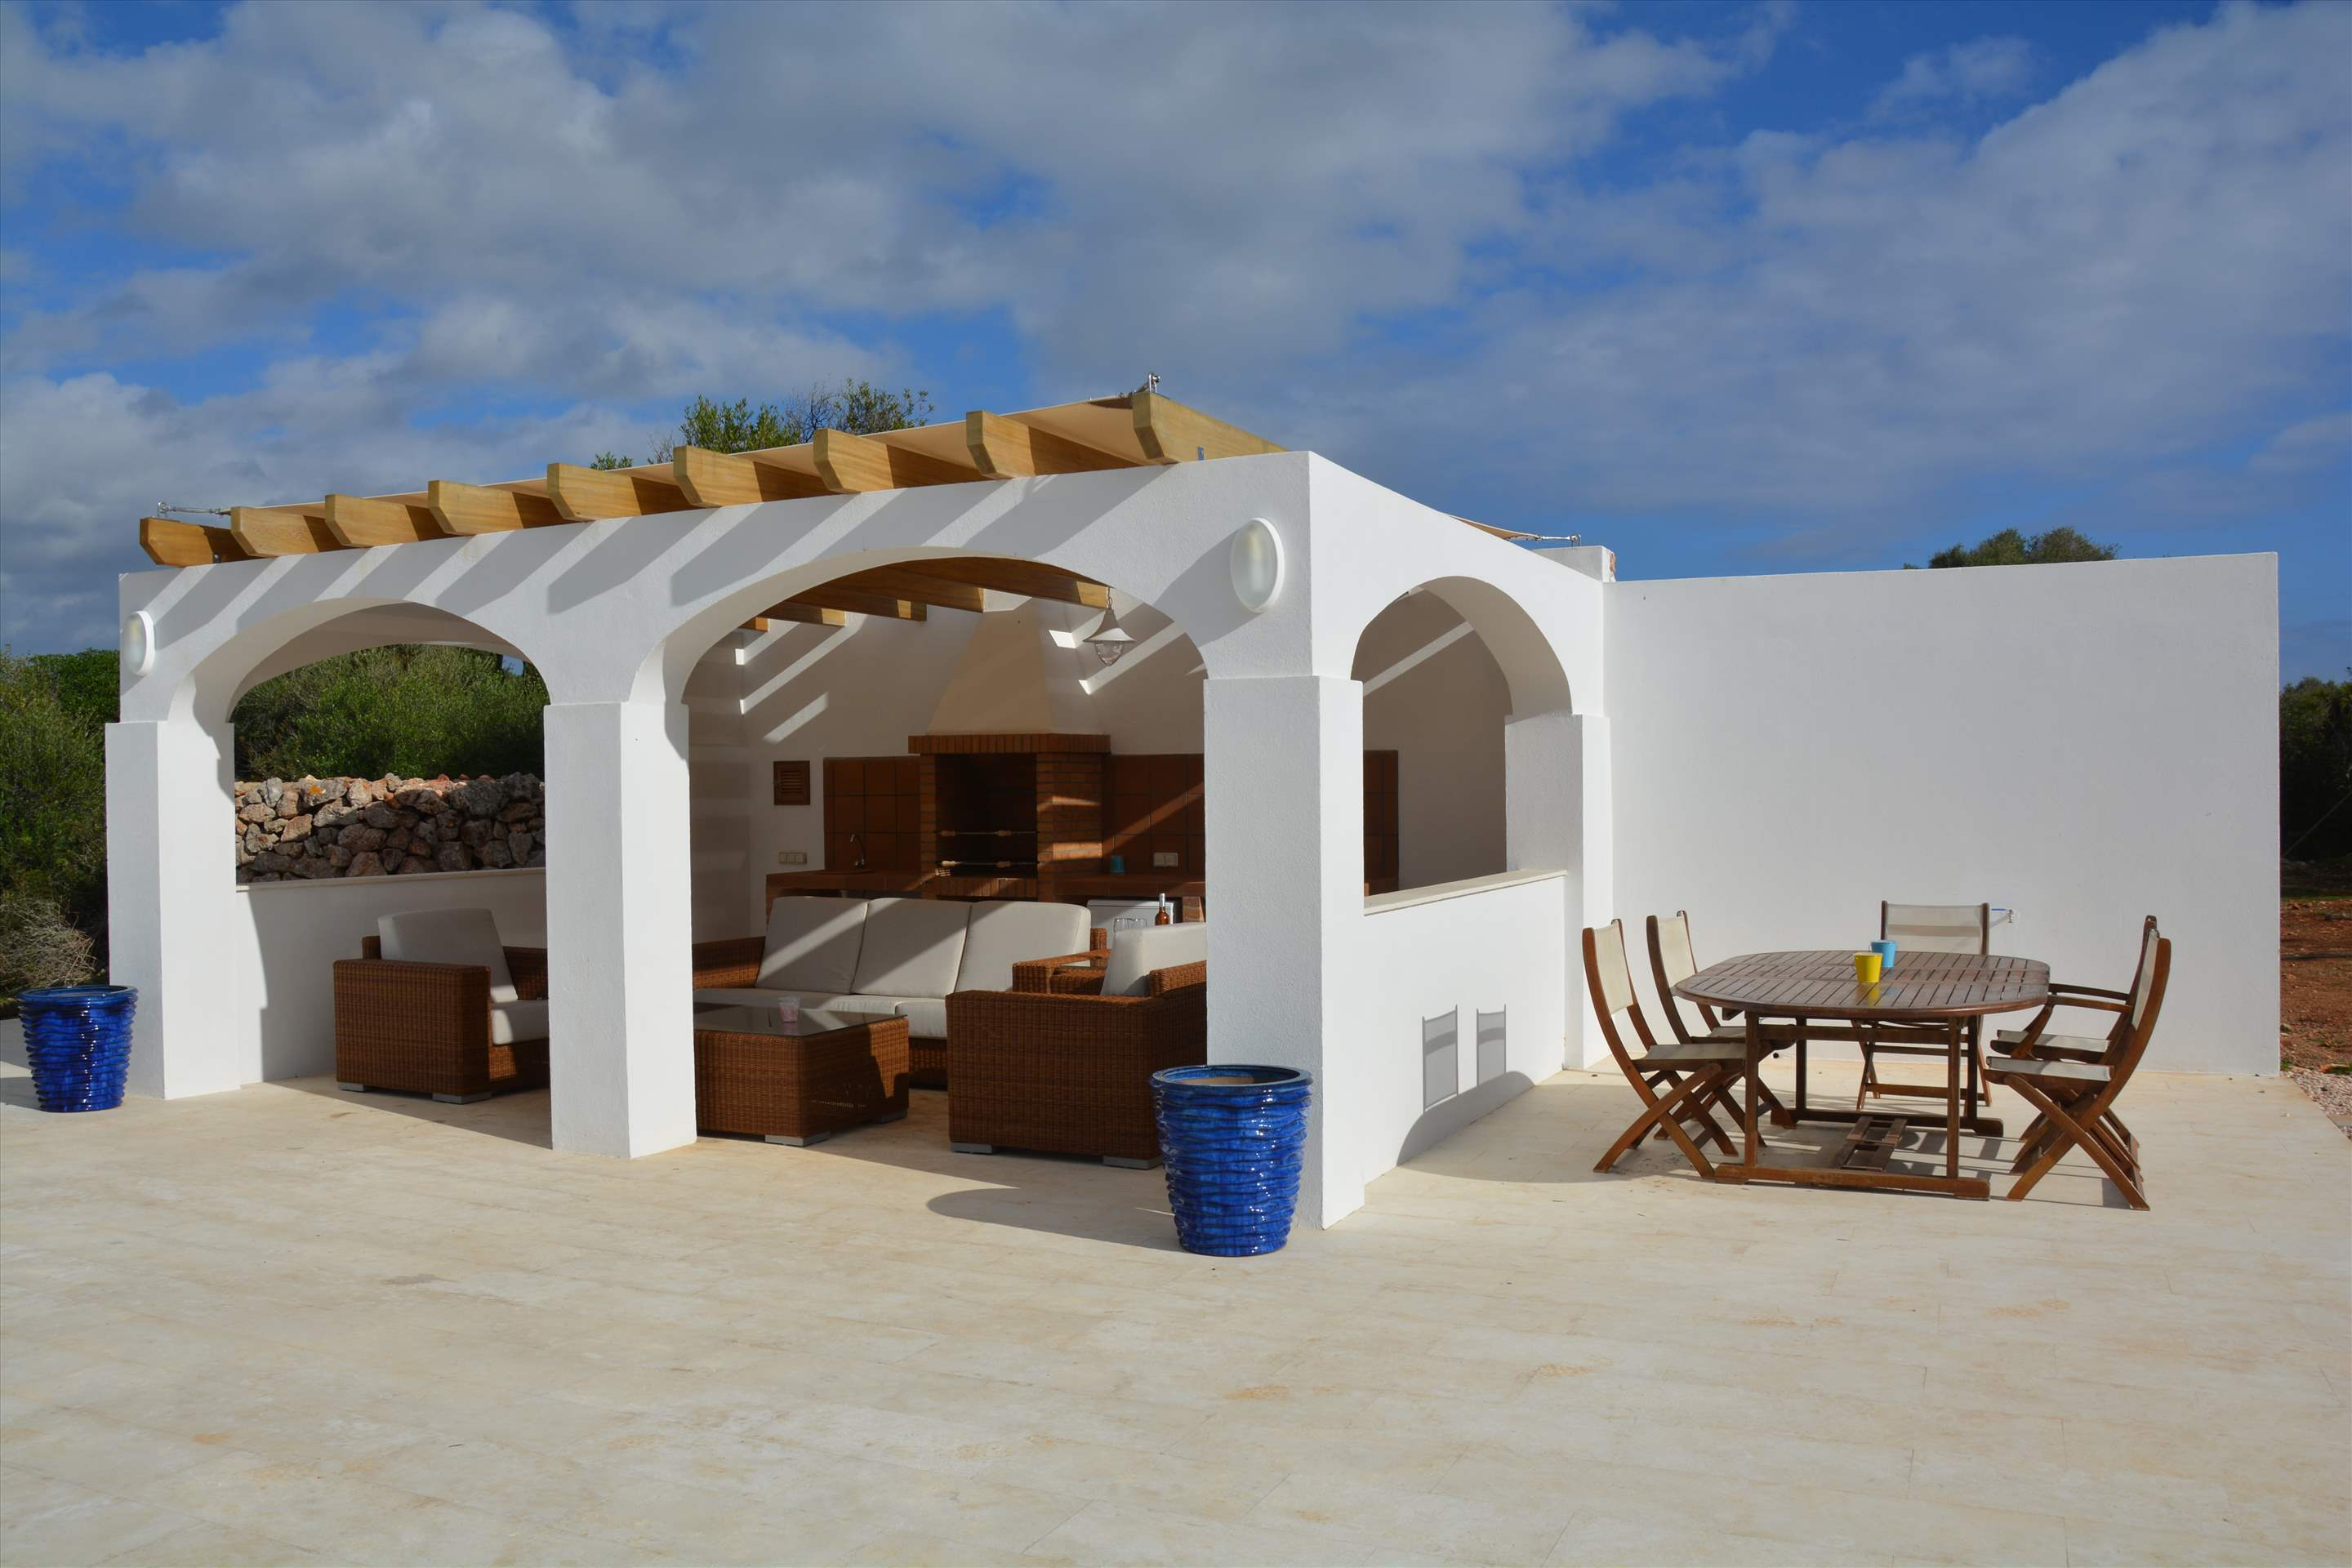 Les Arcs, 5 bedroom villa in Mahon, San Luis & South East, Menorca Photo #14